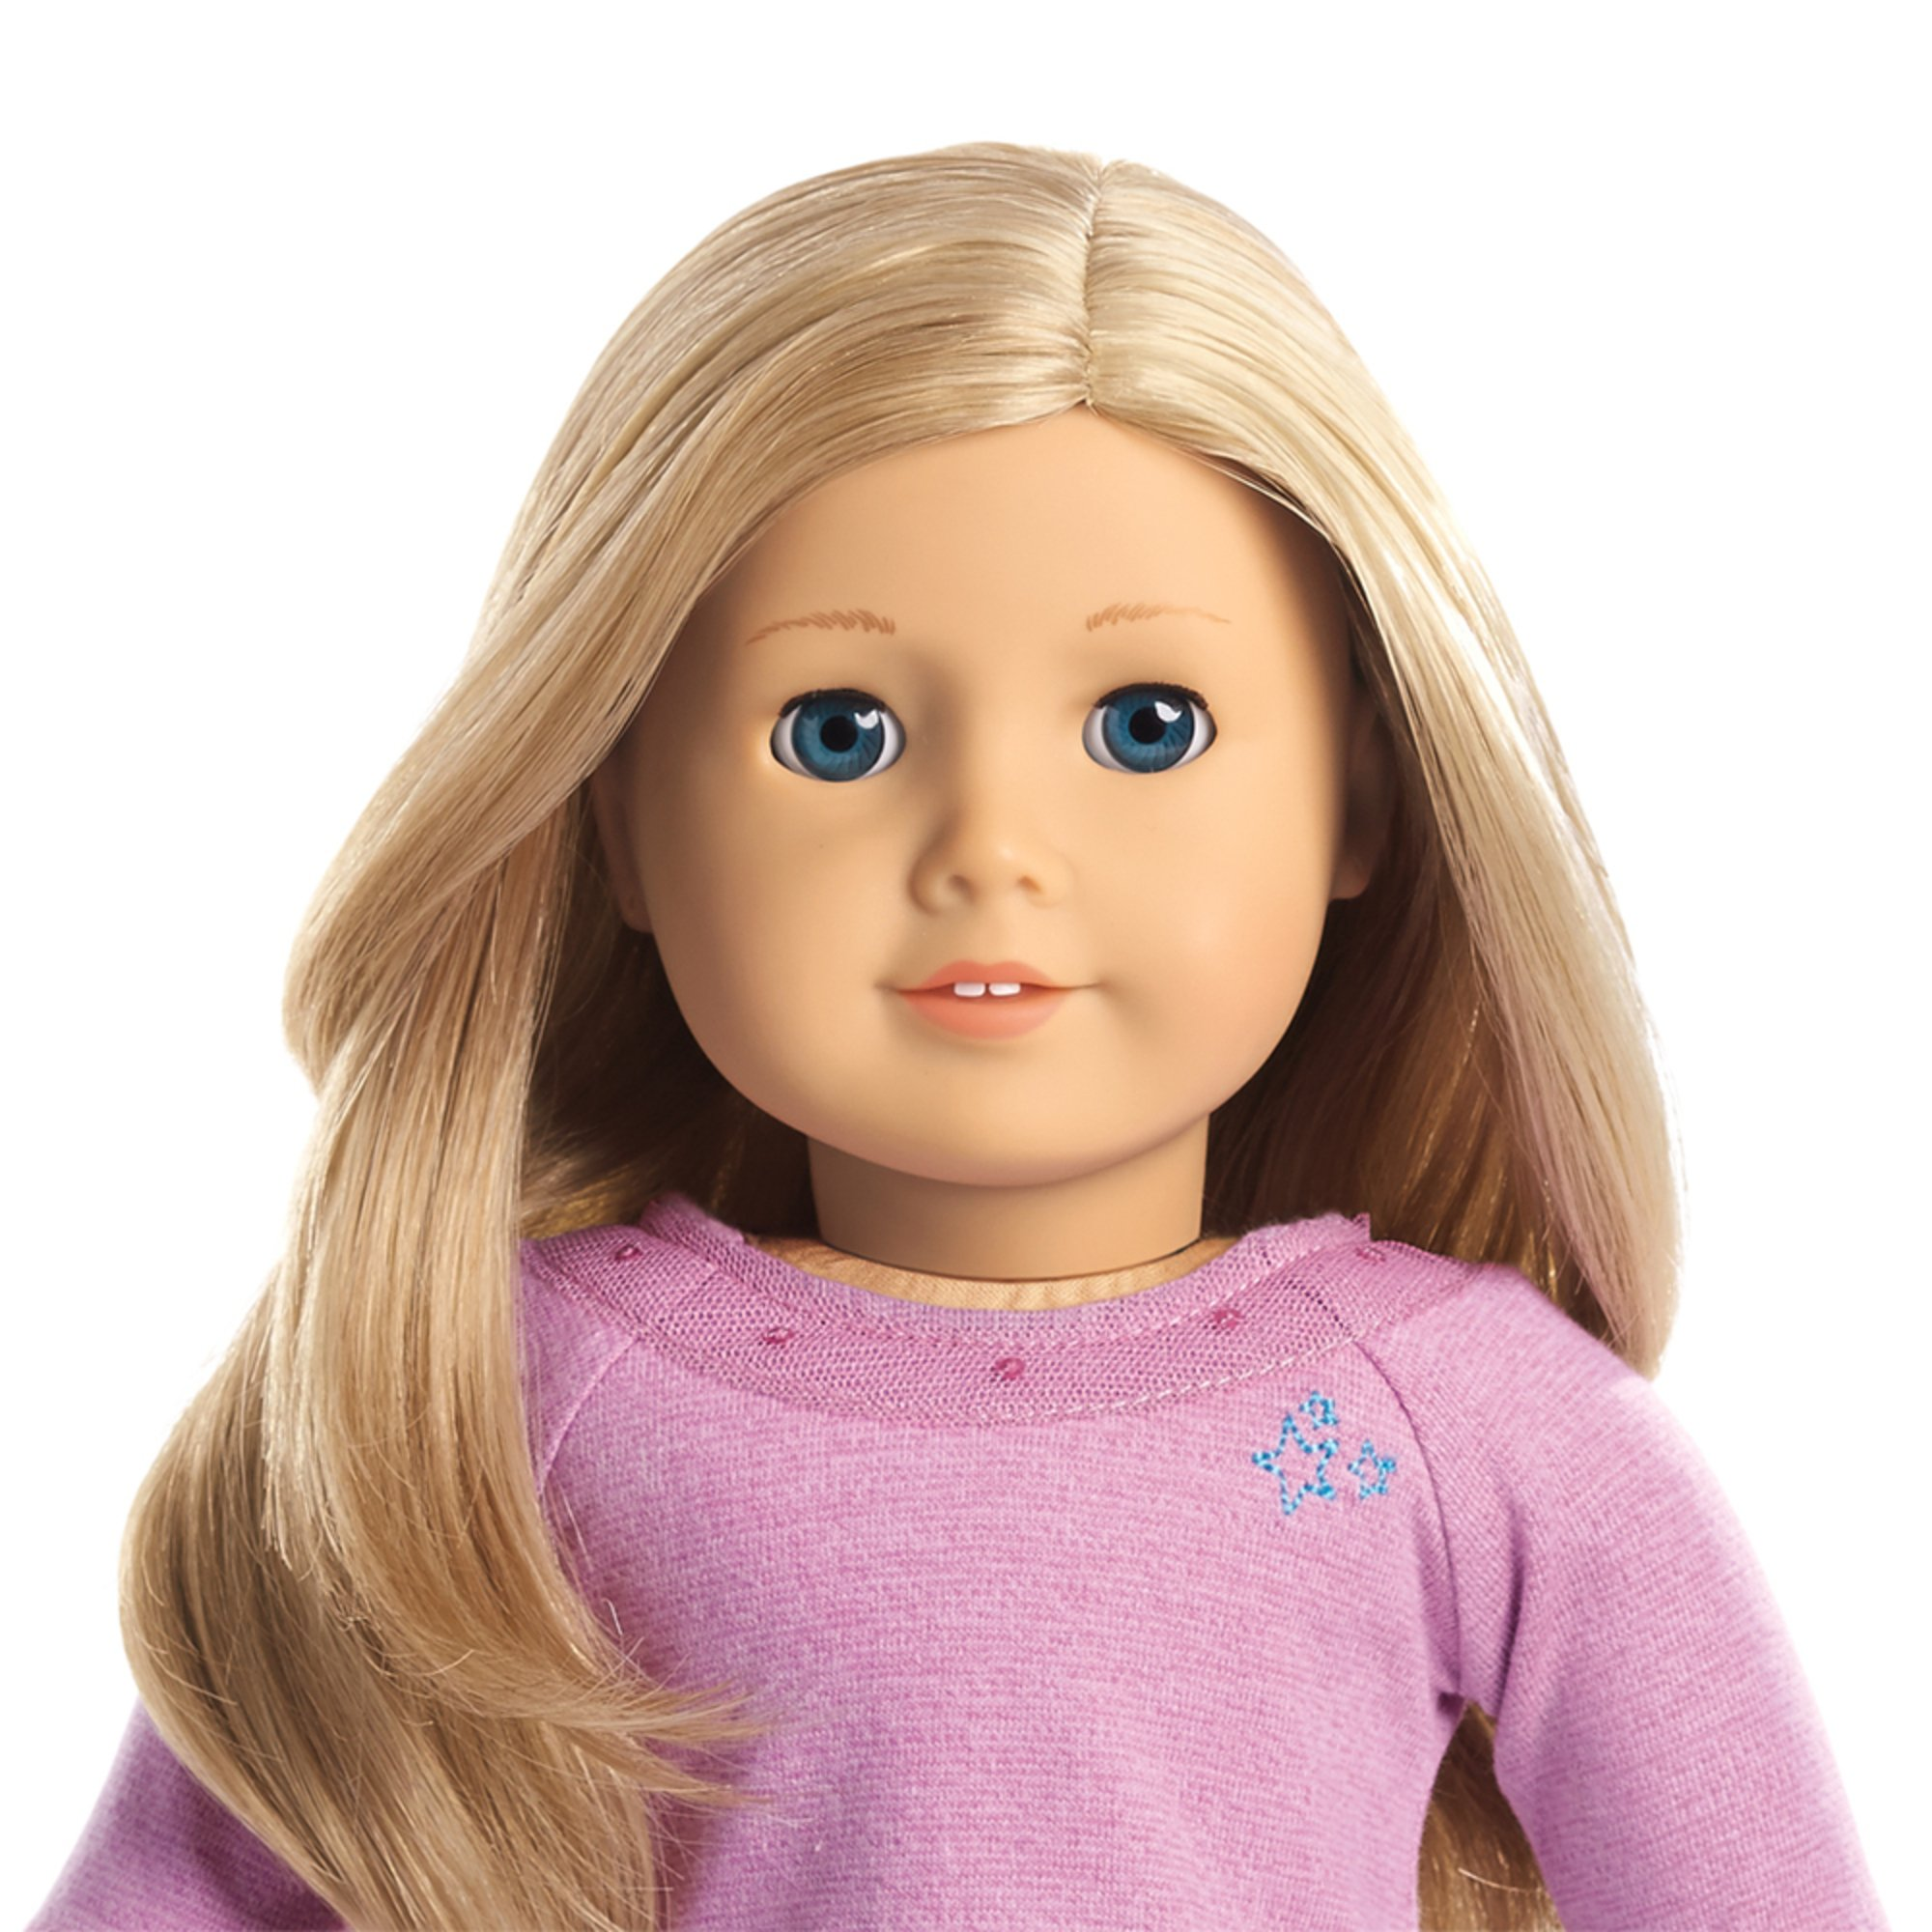 American Girl Truly Me Doll Blue Eyes Light Skin And